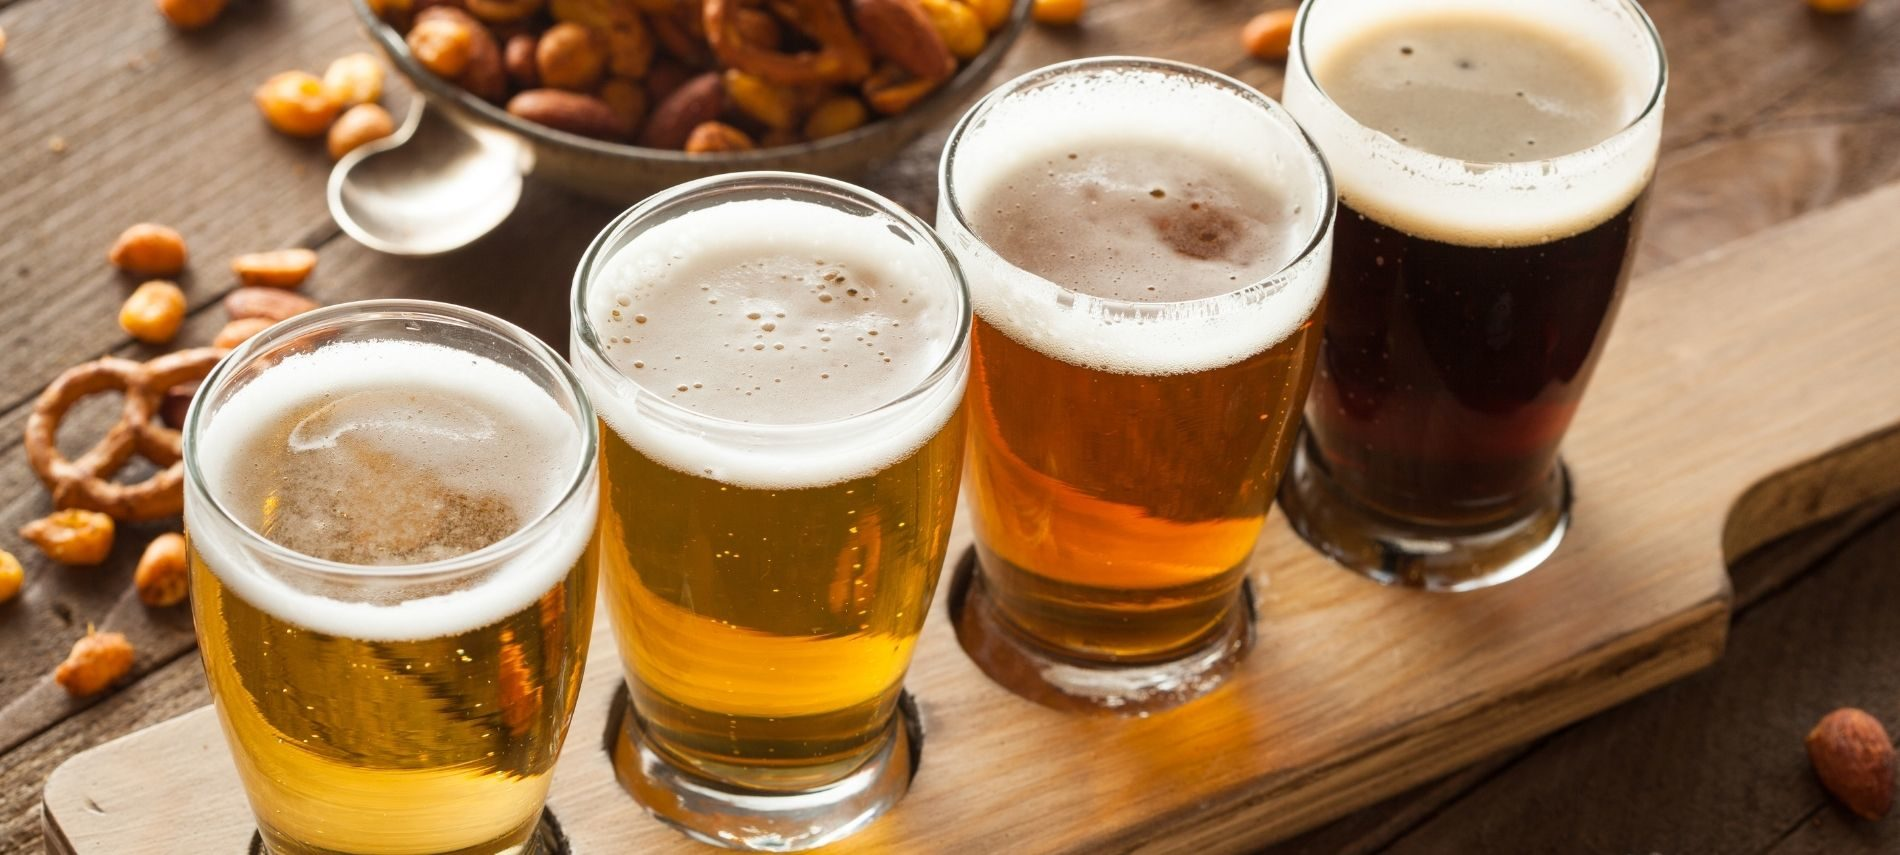 Flight of beer in different shades of amber surrounded by pretzels.